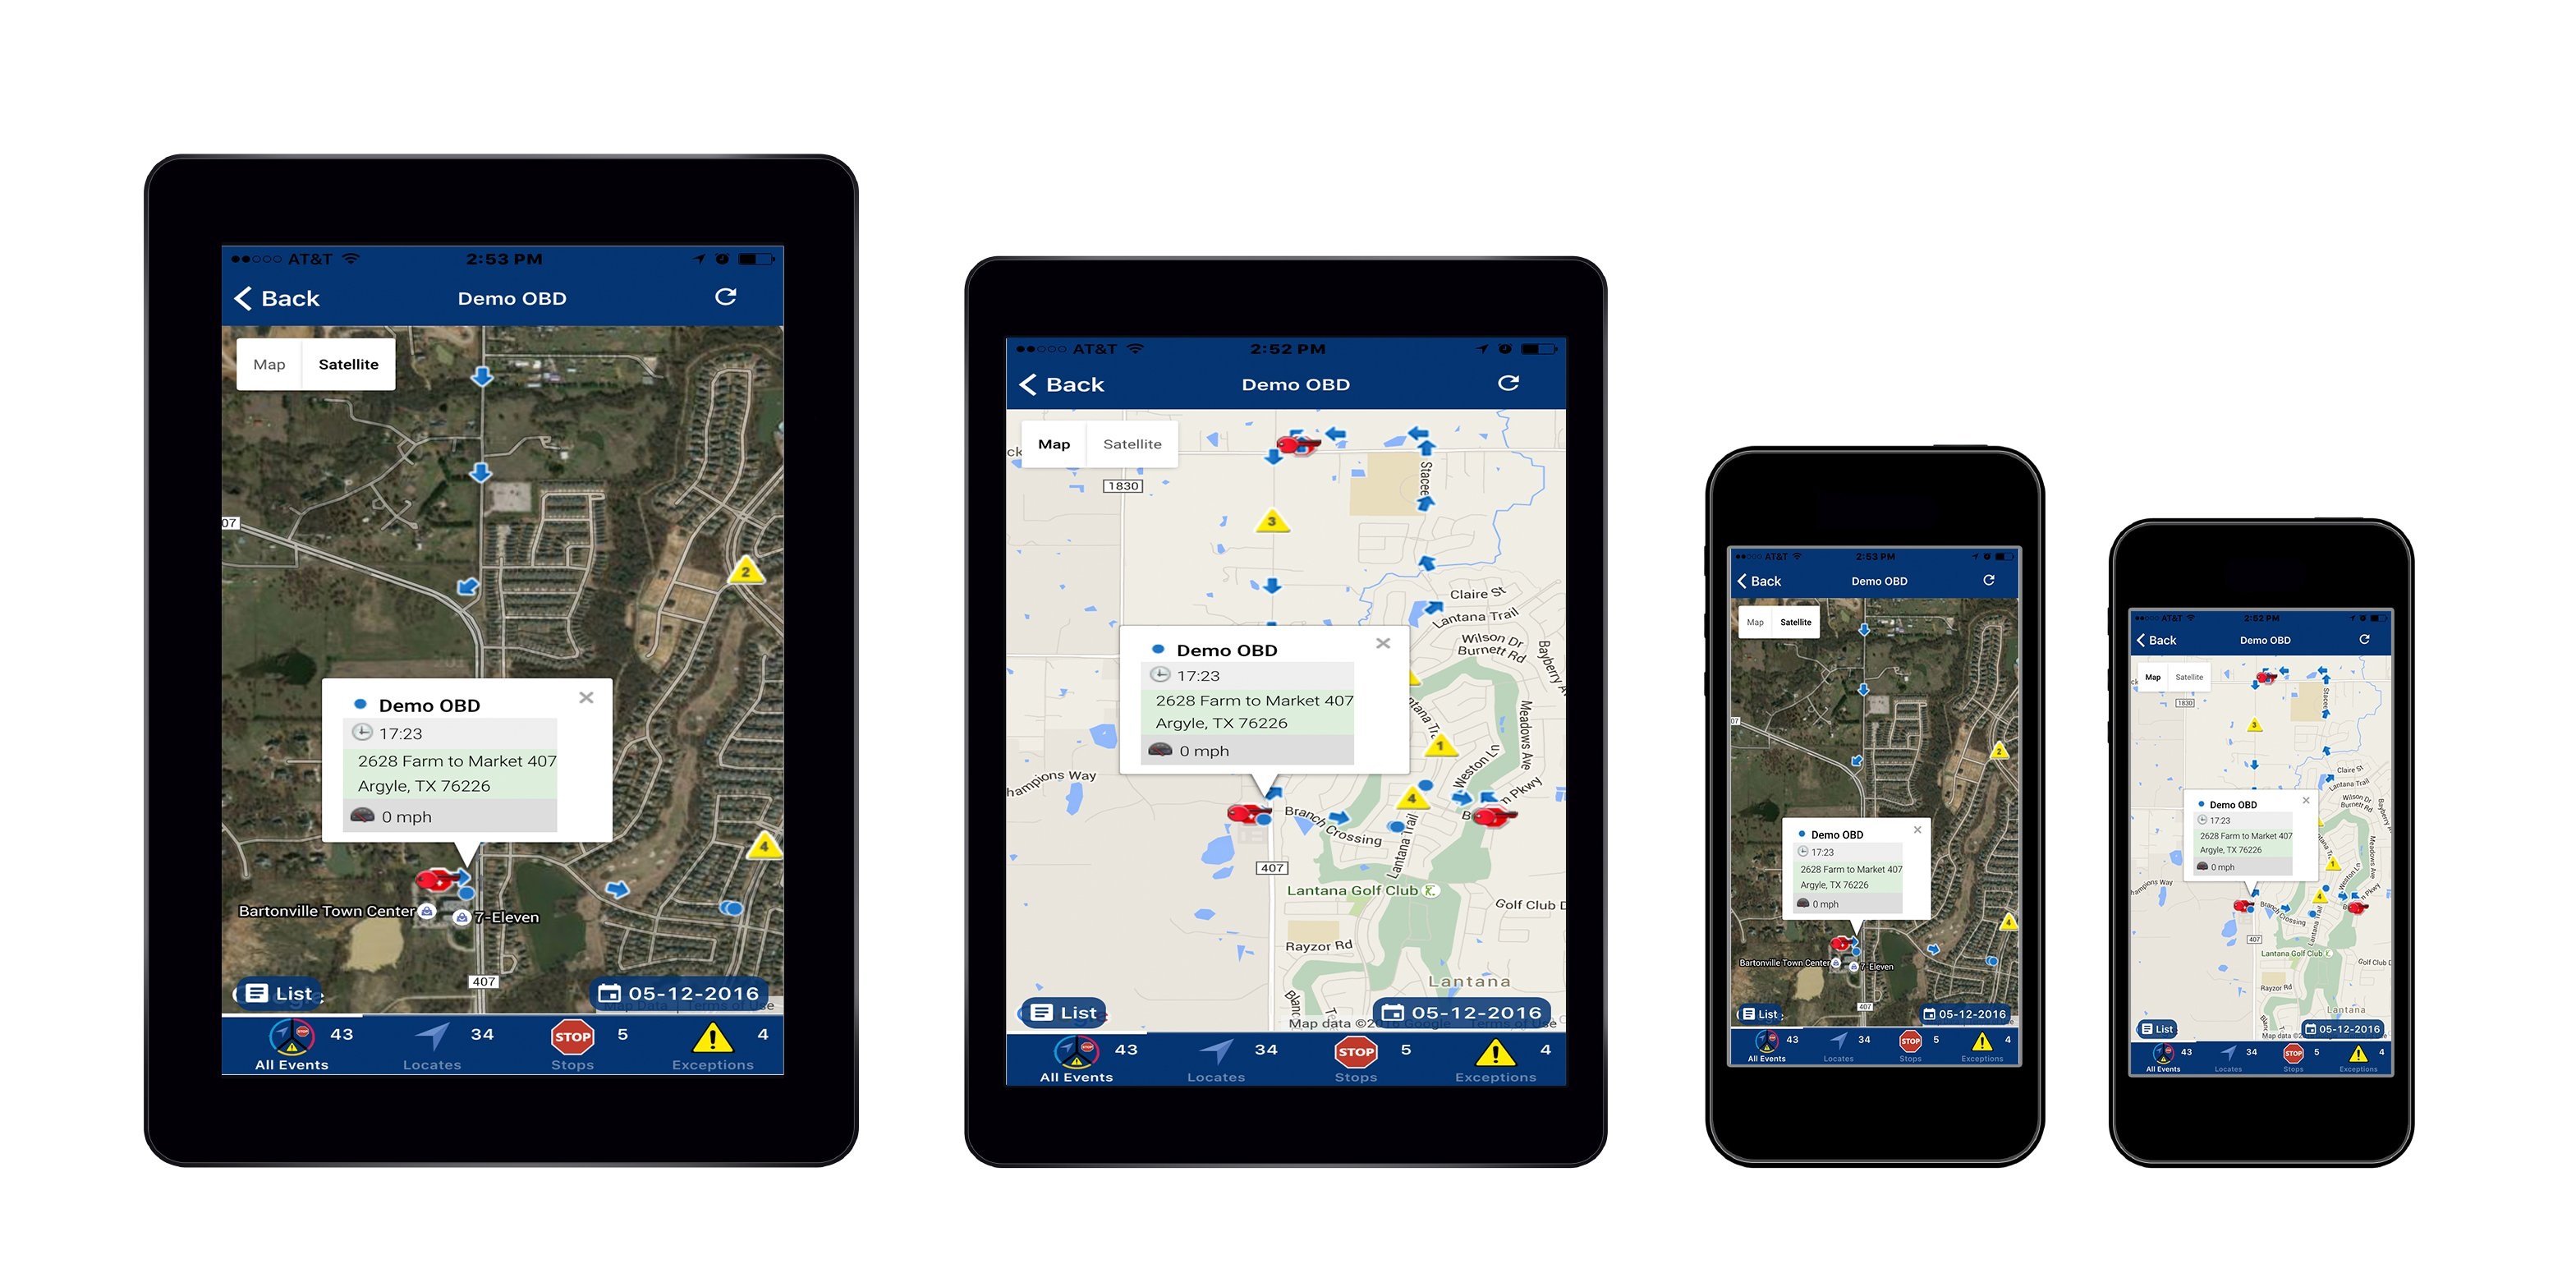 Access Rhino Fleet Tracking from any device using the iOS and android apps